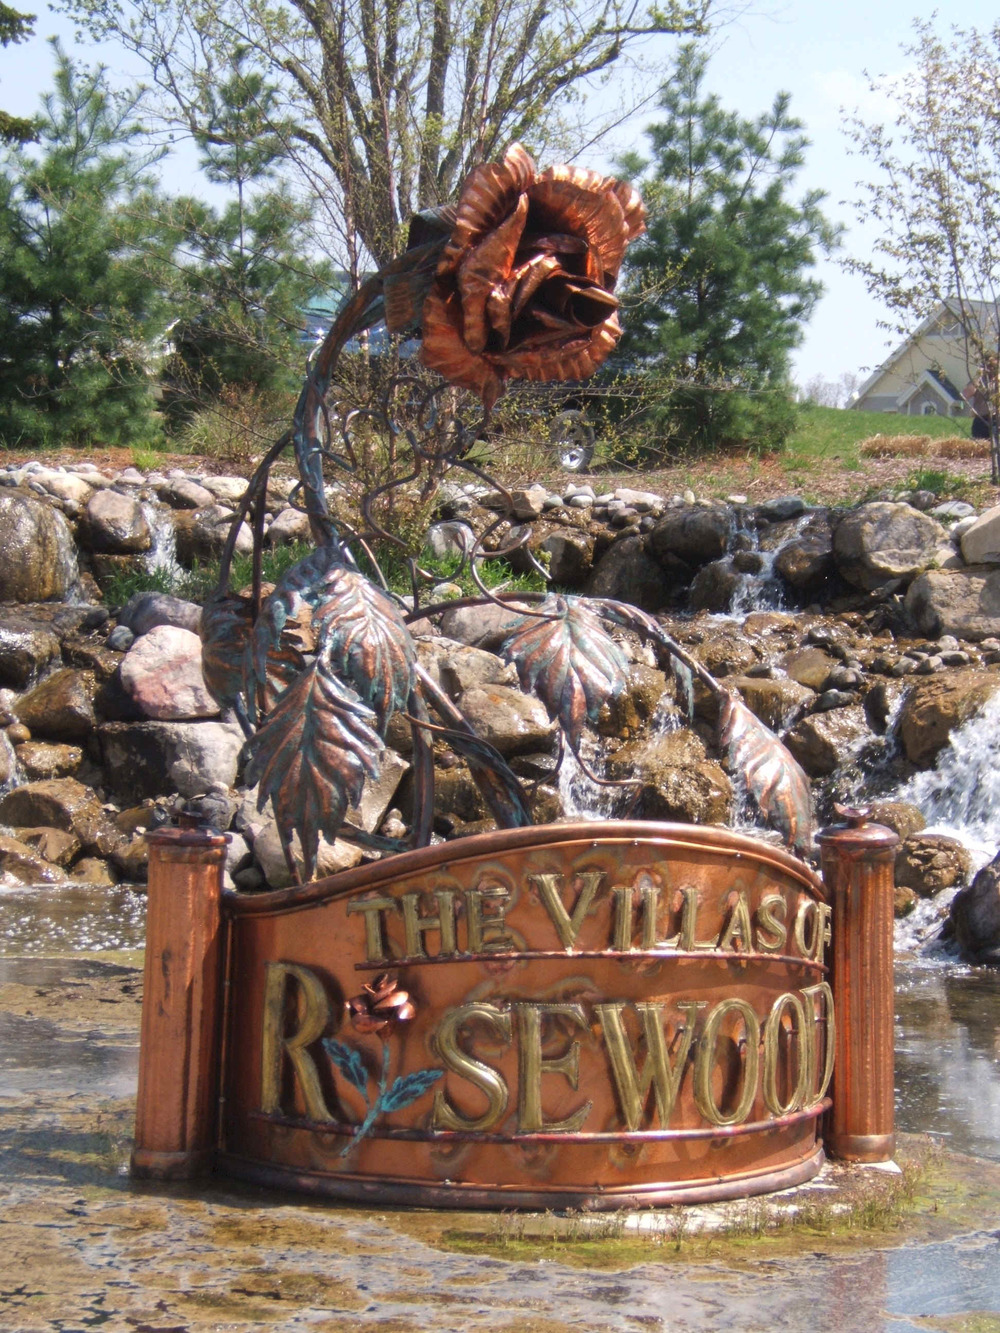 rose_wood_andersons_metal_sculpture.jpg